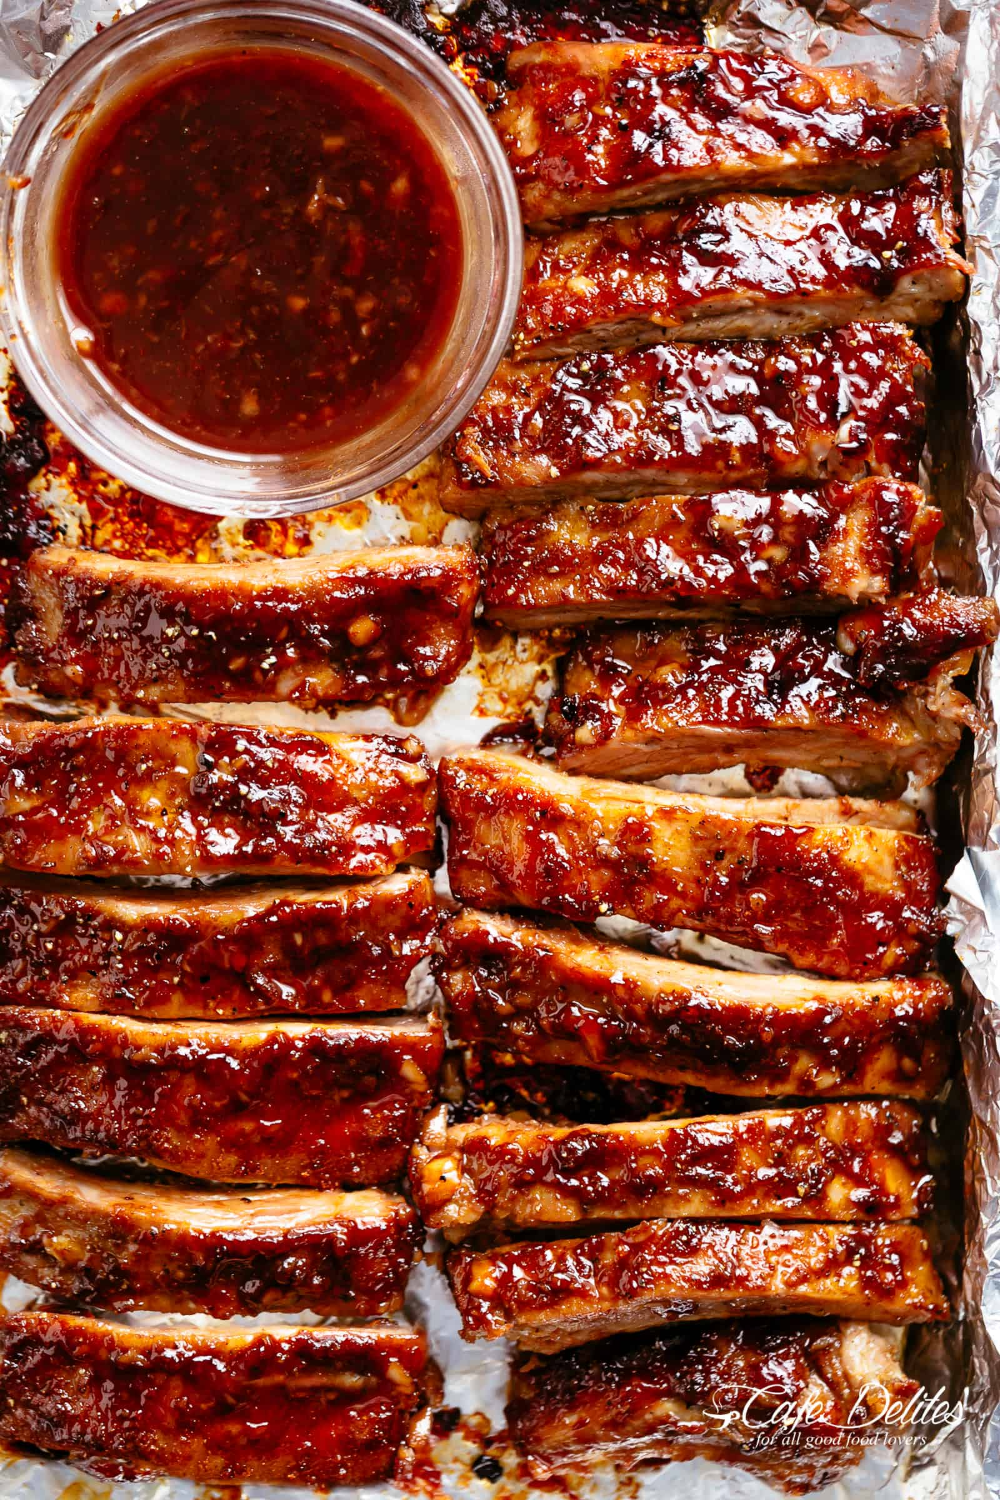 Oven Barbecue Ribs slathered in the most delicious sticky barbecue sauce with a kick of garlic and optional heat! Juicy melt-in-your-mouth oven baked Barbecue Pork Ribs are fall-off-the-bone delicious! Double up on incredible flavour with an easy to make dry rub first, then coat them in a seasoned barbecue sauce mixture so addictive you won't stop at one! Finger licking good ribs right here! | cafedelites.com #ribsinoven